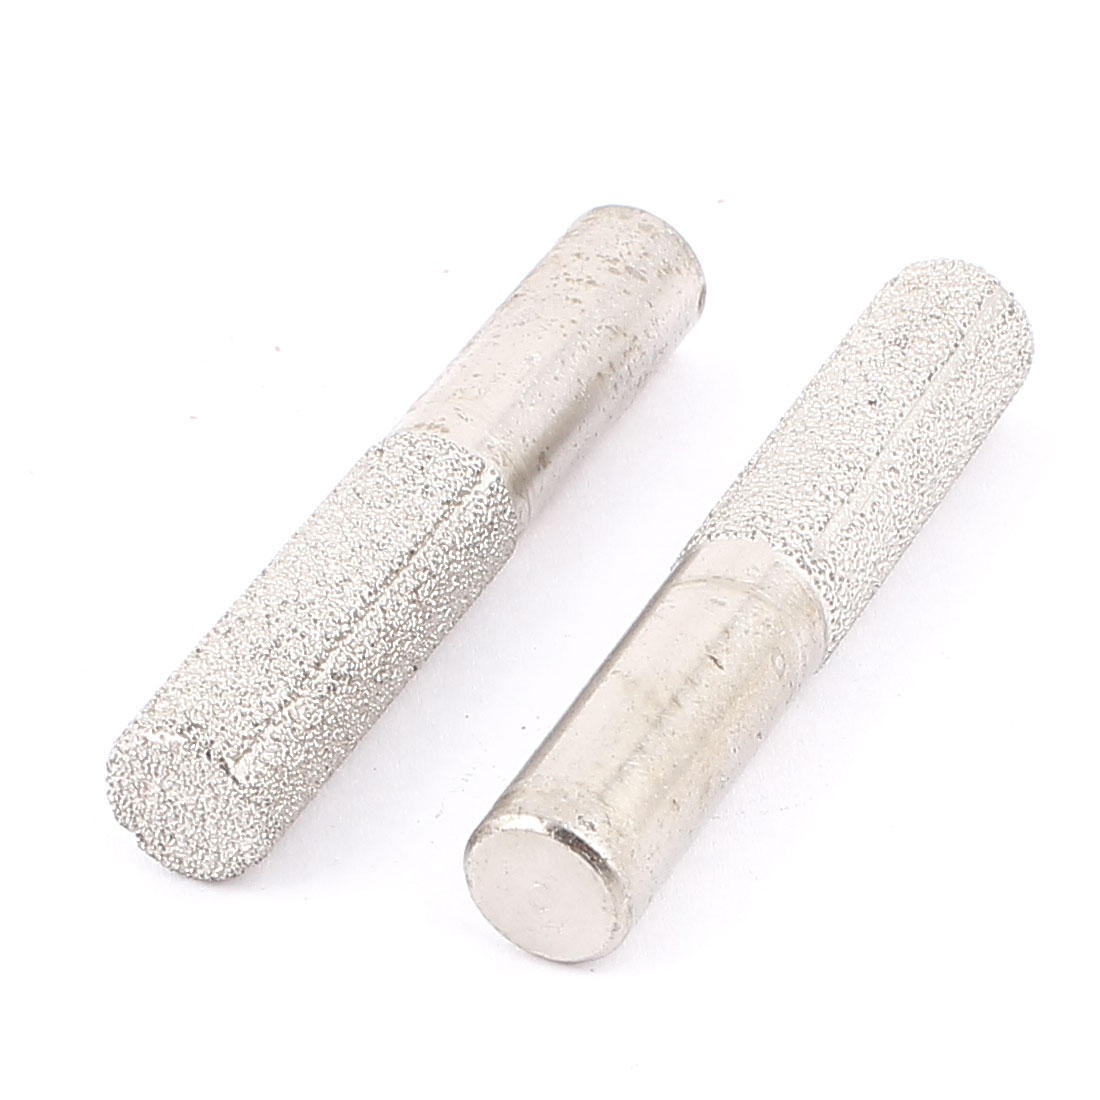 13mm Dia Cylinder Grinding Head Diamond Brazed Mounted Point Bistrique 2pcs